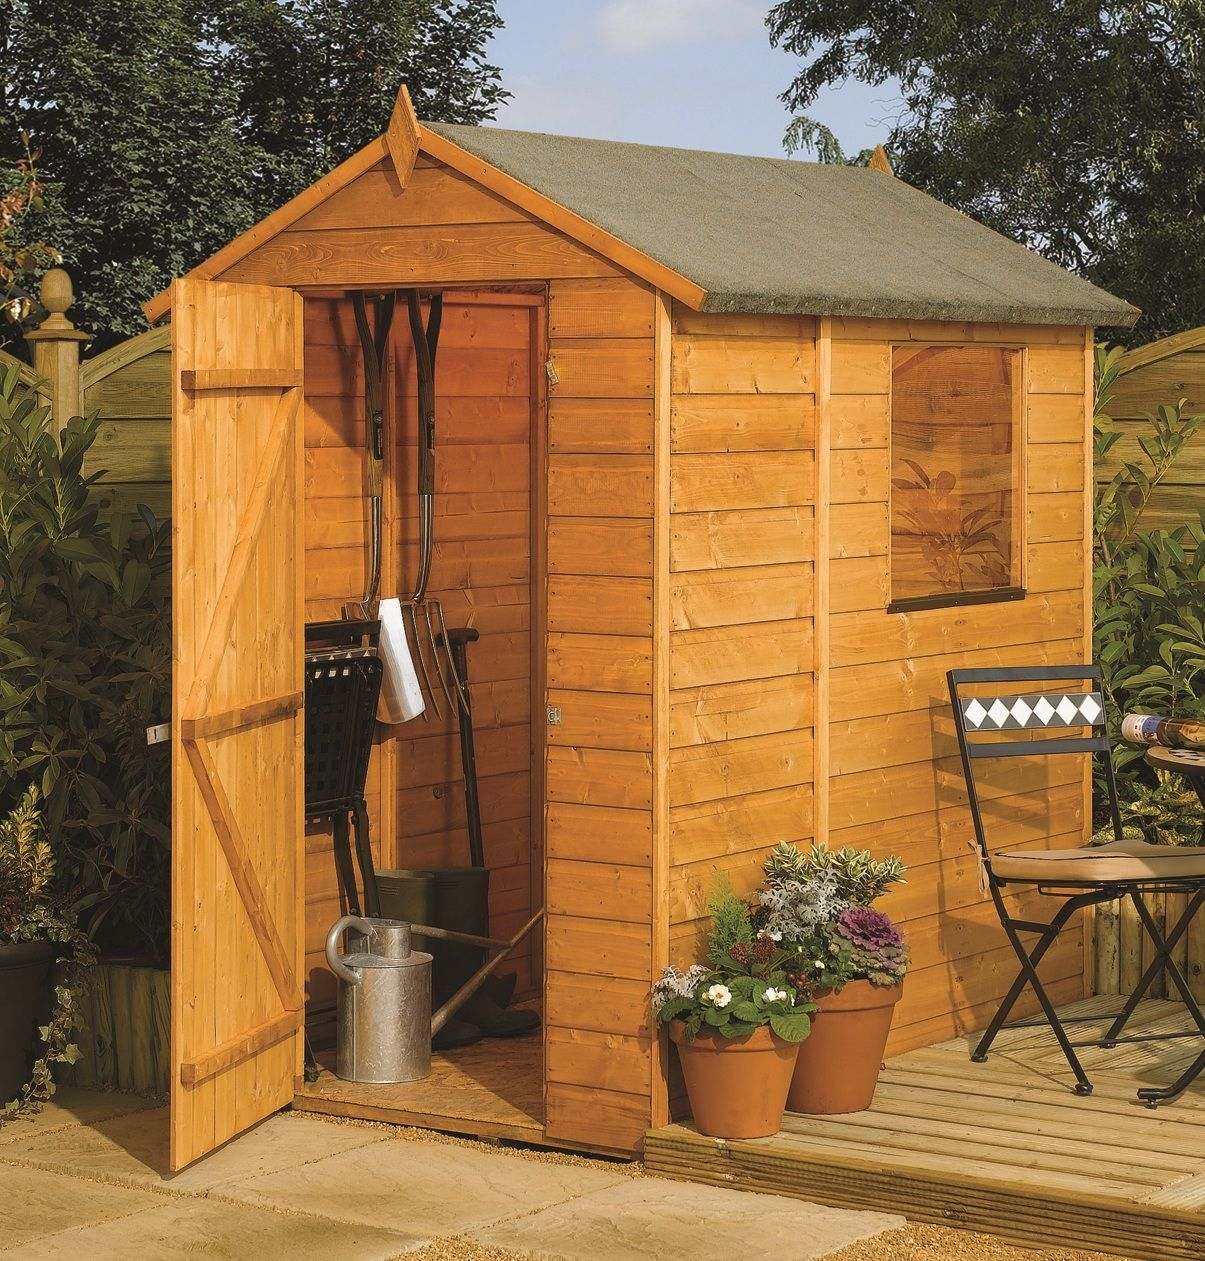 This Rowlinson 6X4 apex garden shed is built using 12mm tongue